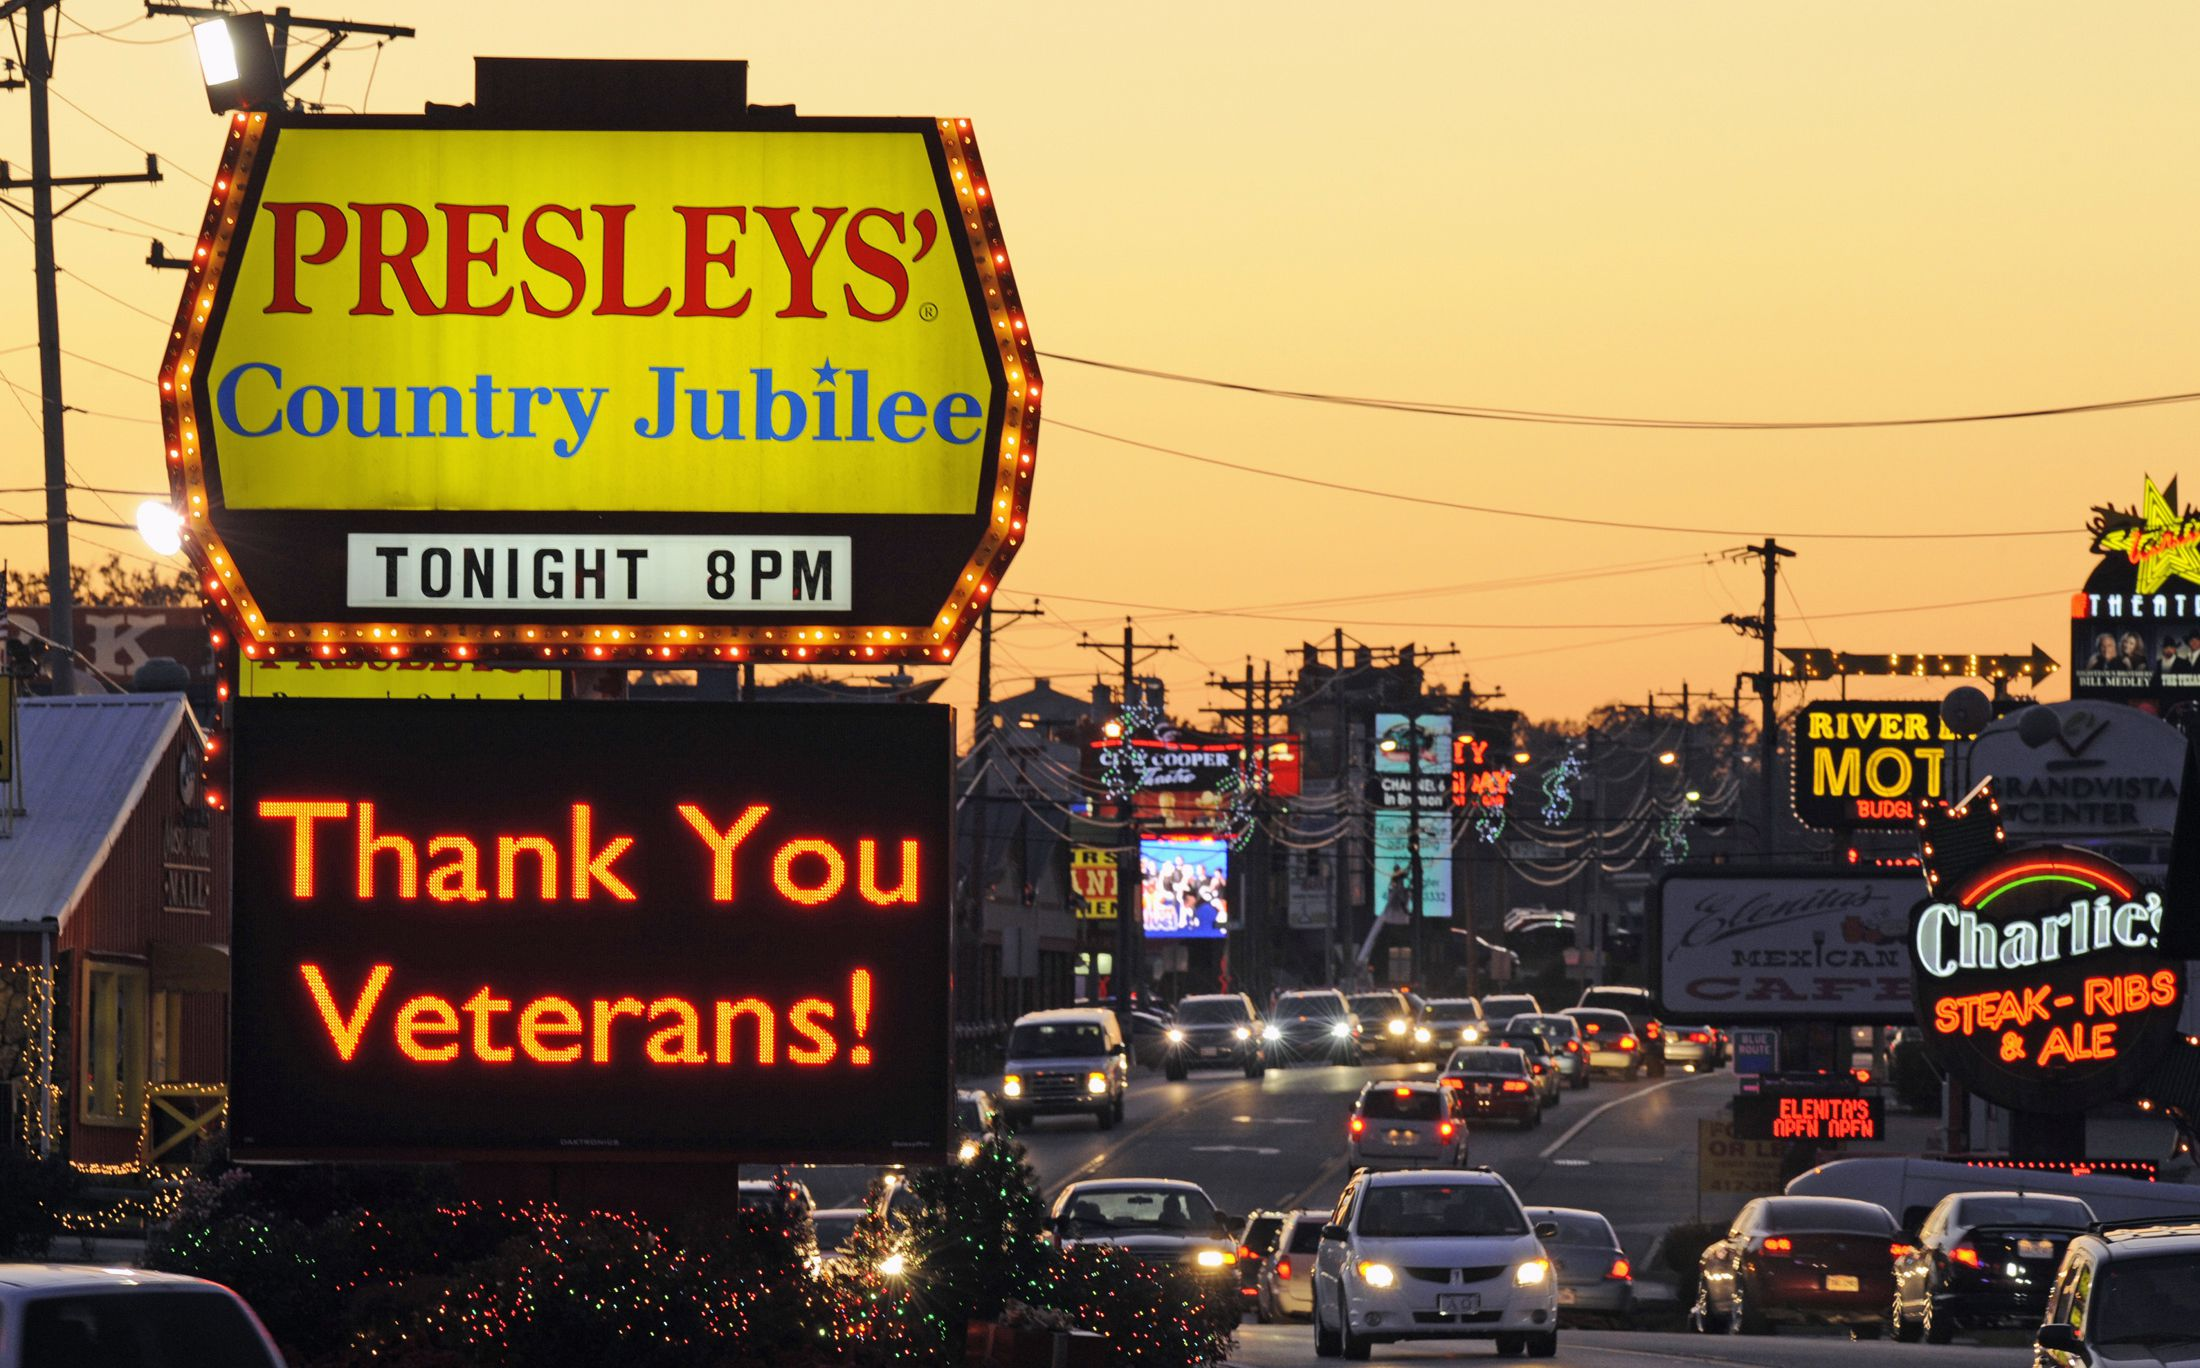 A music venue flashes an electronic marquee thanking military veterans in Branson, Missouri, November 9, 2011. The Midwestern entertainment-centered town in the Ozarks caters to veterans in the days leading up to Veteran's Day on November 11. Picture taken November 9, 2011. REUTERS/Dave Kaup (UNITED STATES - Tags: MILITARY SOCIETY ANNIVERSARY) - RTR2TTZJ